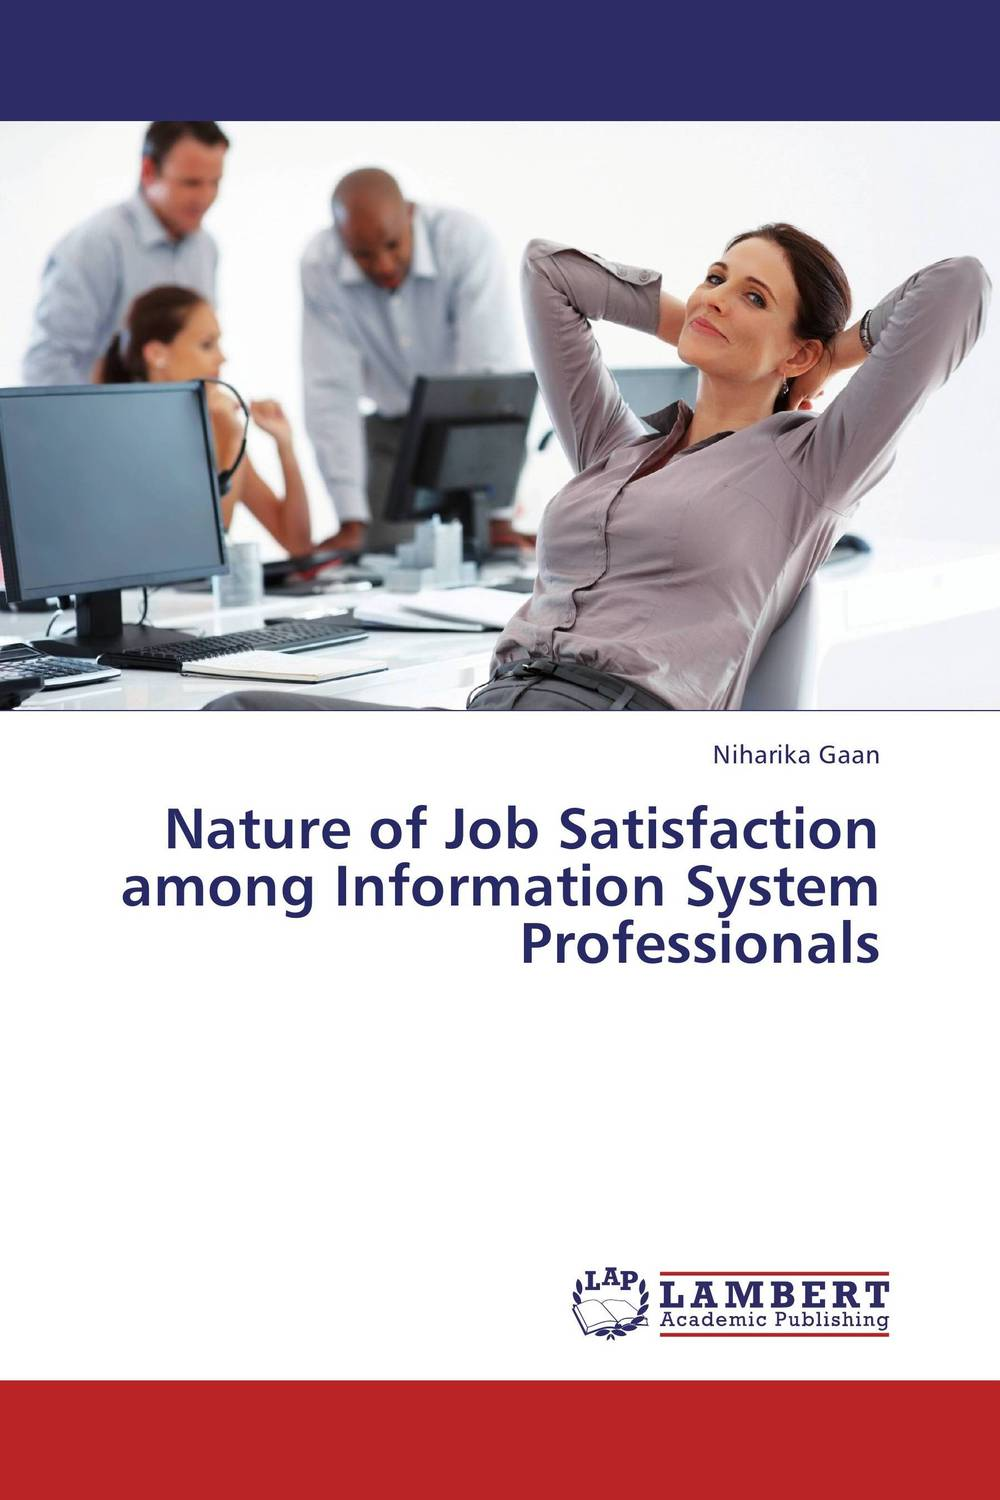 Nature of Job Satisfaction among Information System Professionals impact of job satisfaction on turnover intentions